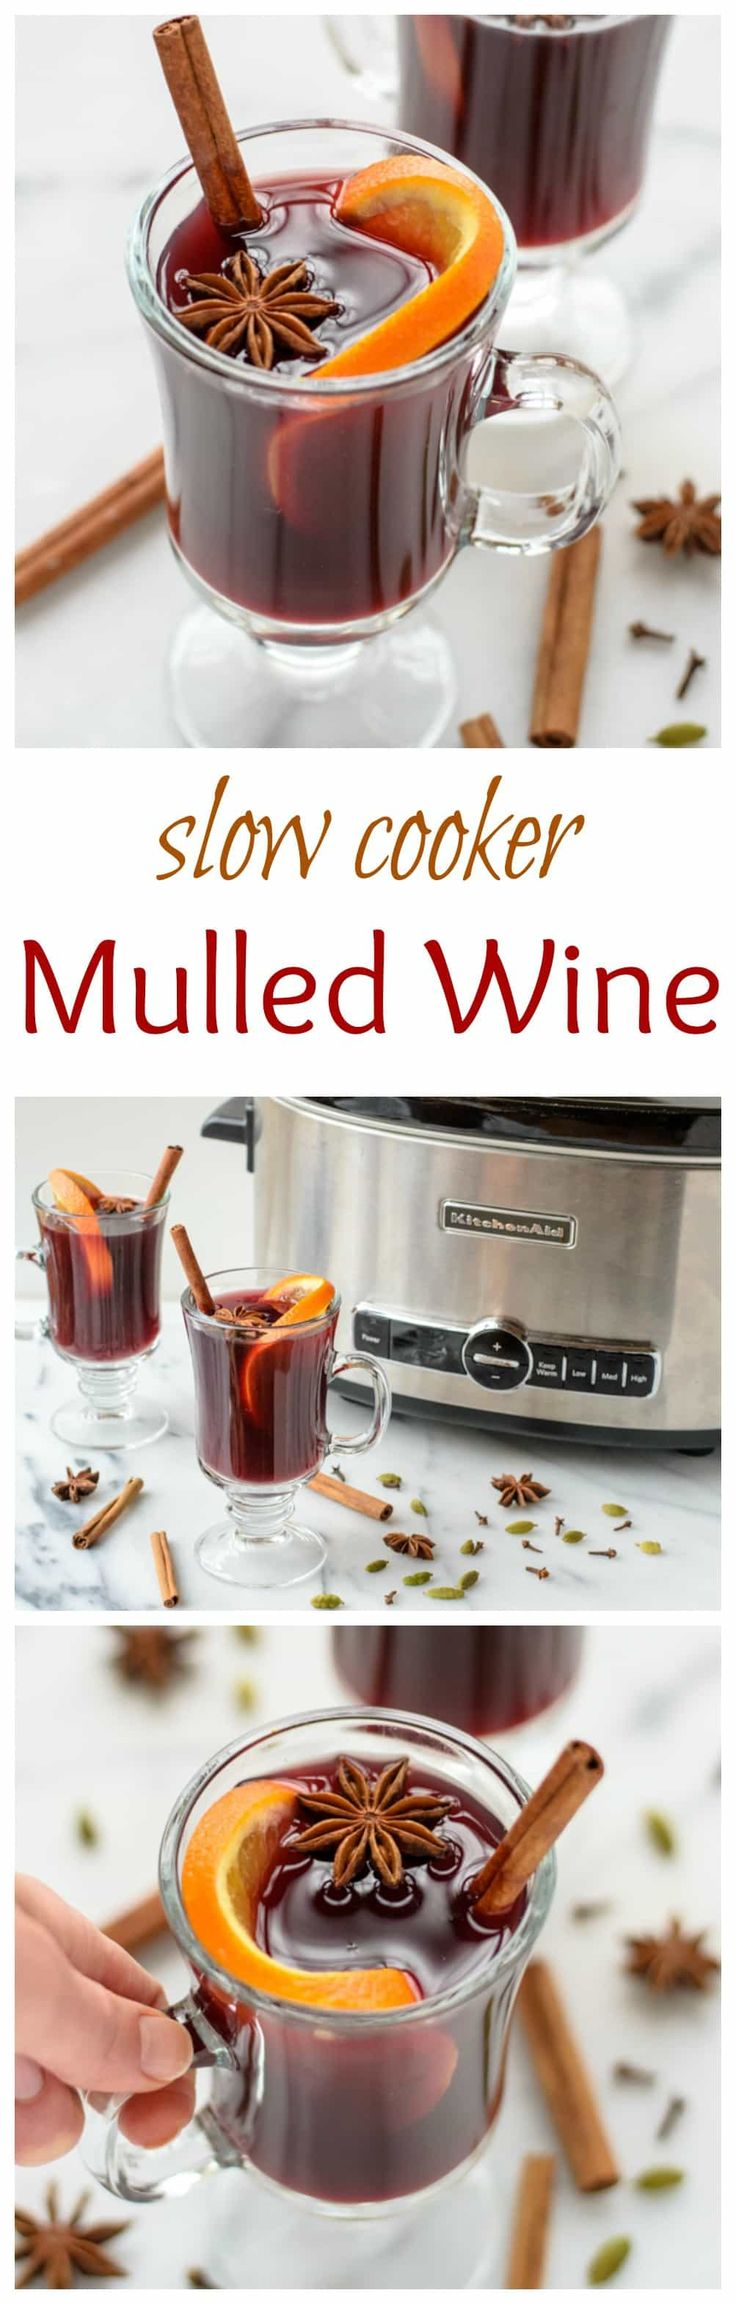 Slow cooker spiced wine(mulled wine) - an easy holiday cocktail recipe, made with red wine, apple cider, citrus, and warm spices. The delicious warm drink recipe is perfect at holiday parties.